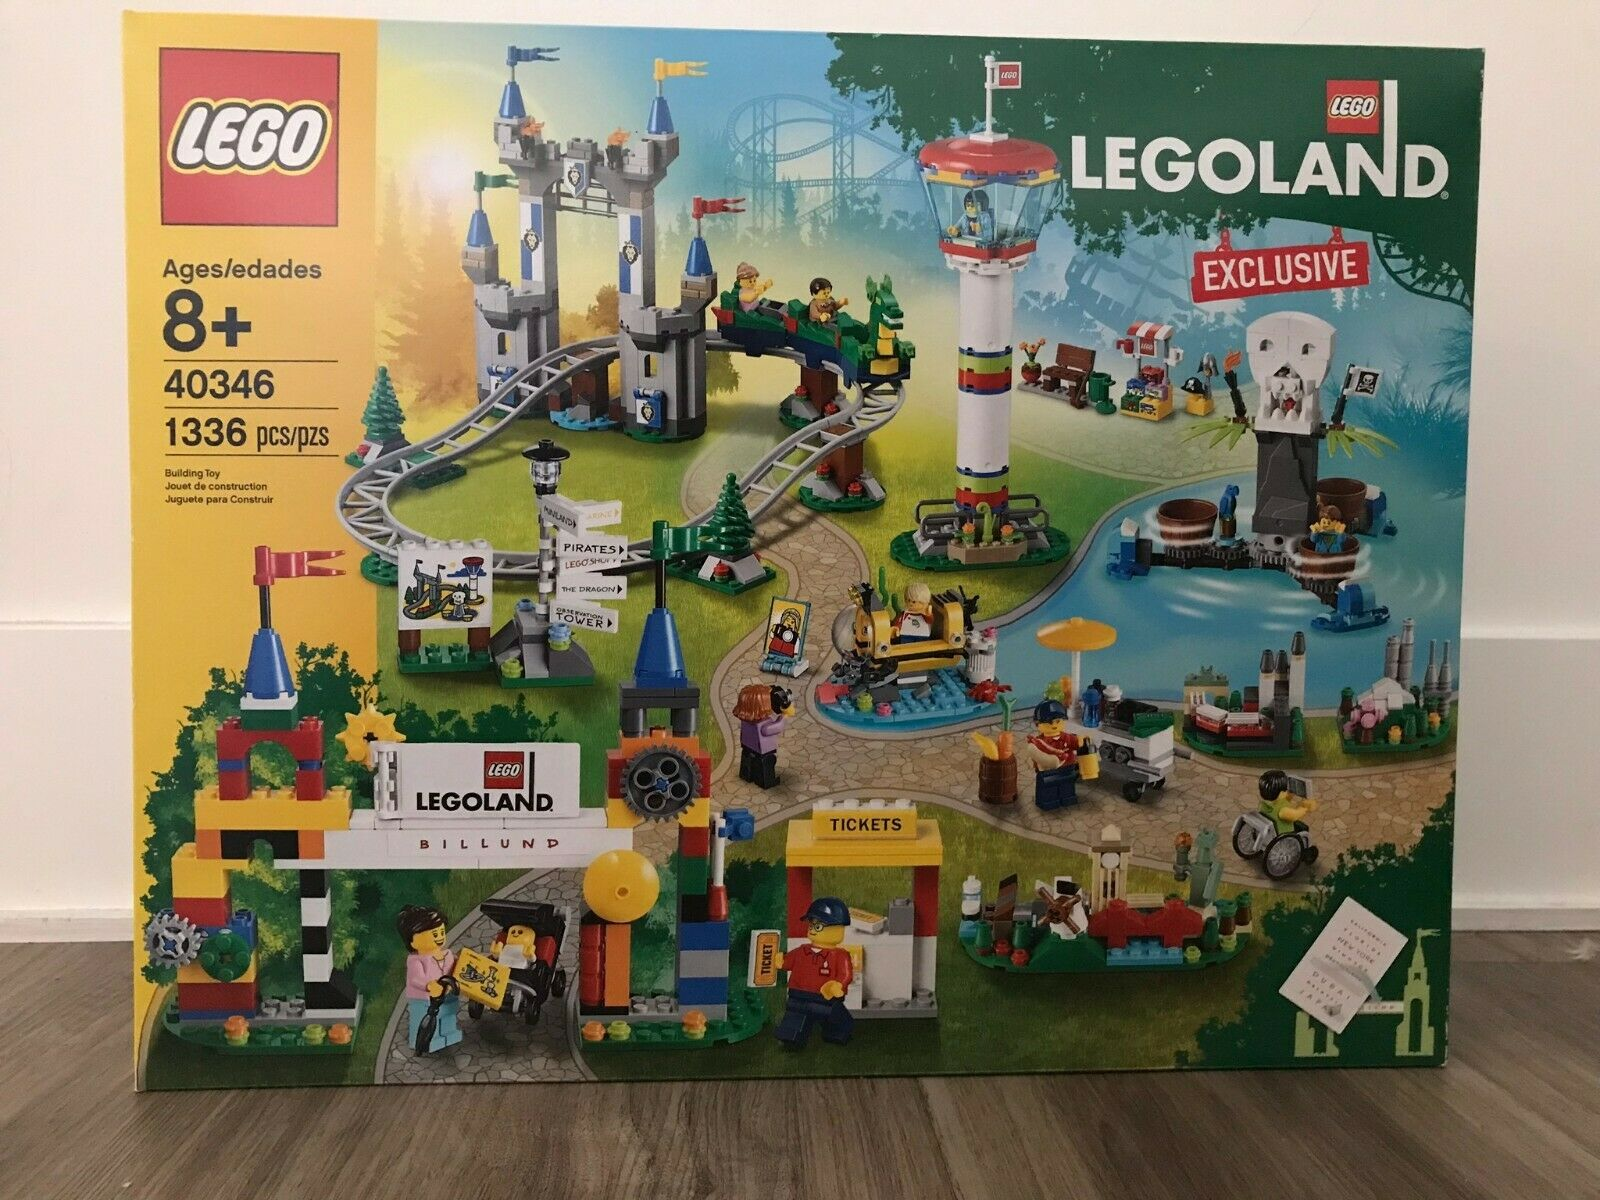 Lego 40346 LEGOLe Exclusive 1336 pcs BRe nuovo FACTORY SEALED 2019 IN-He